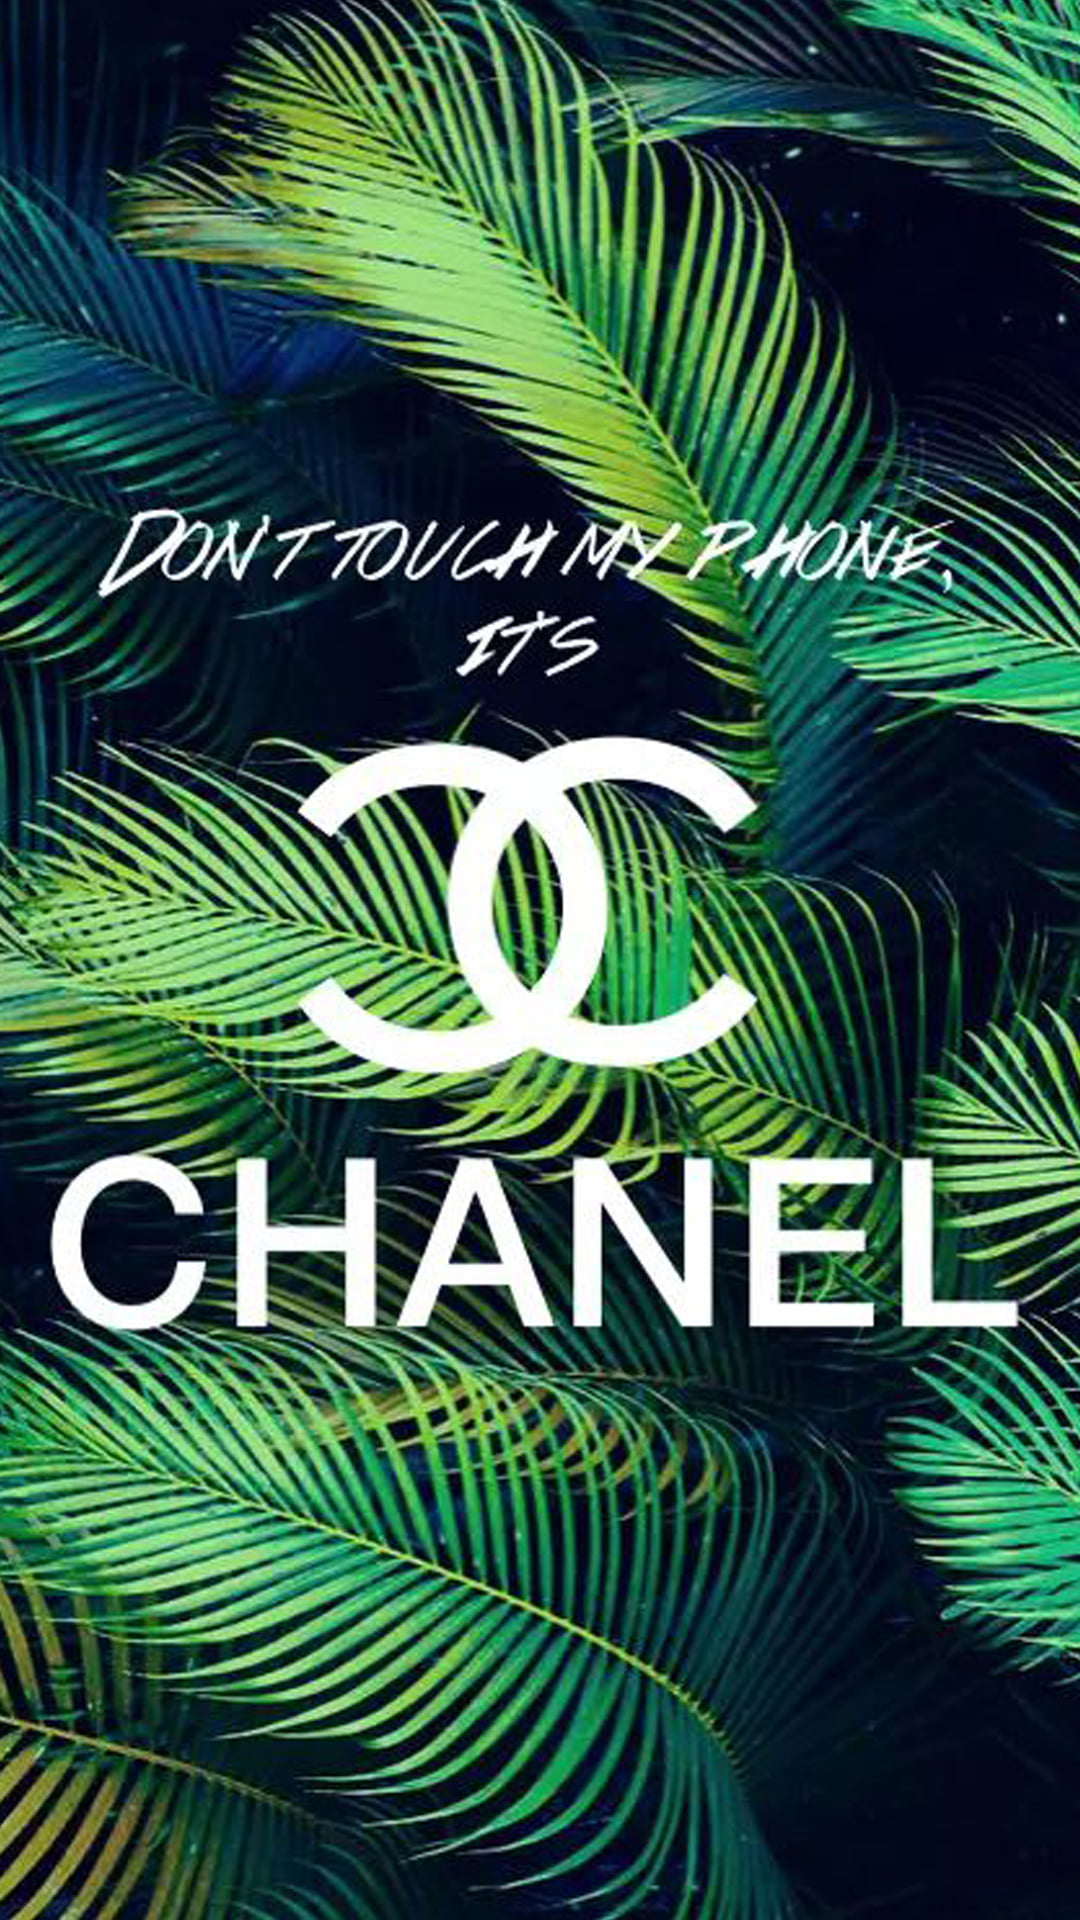 Chanel Iphone Wallpapers